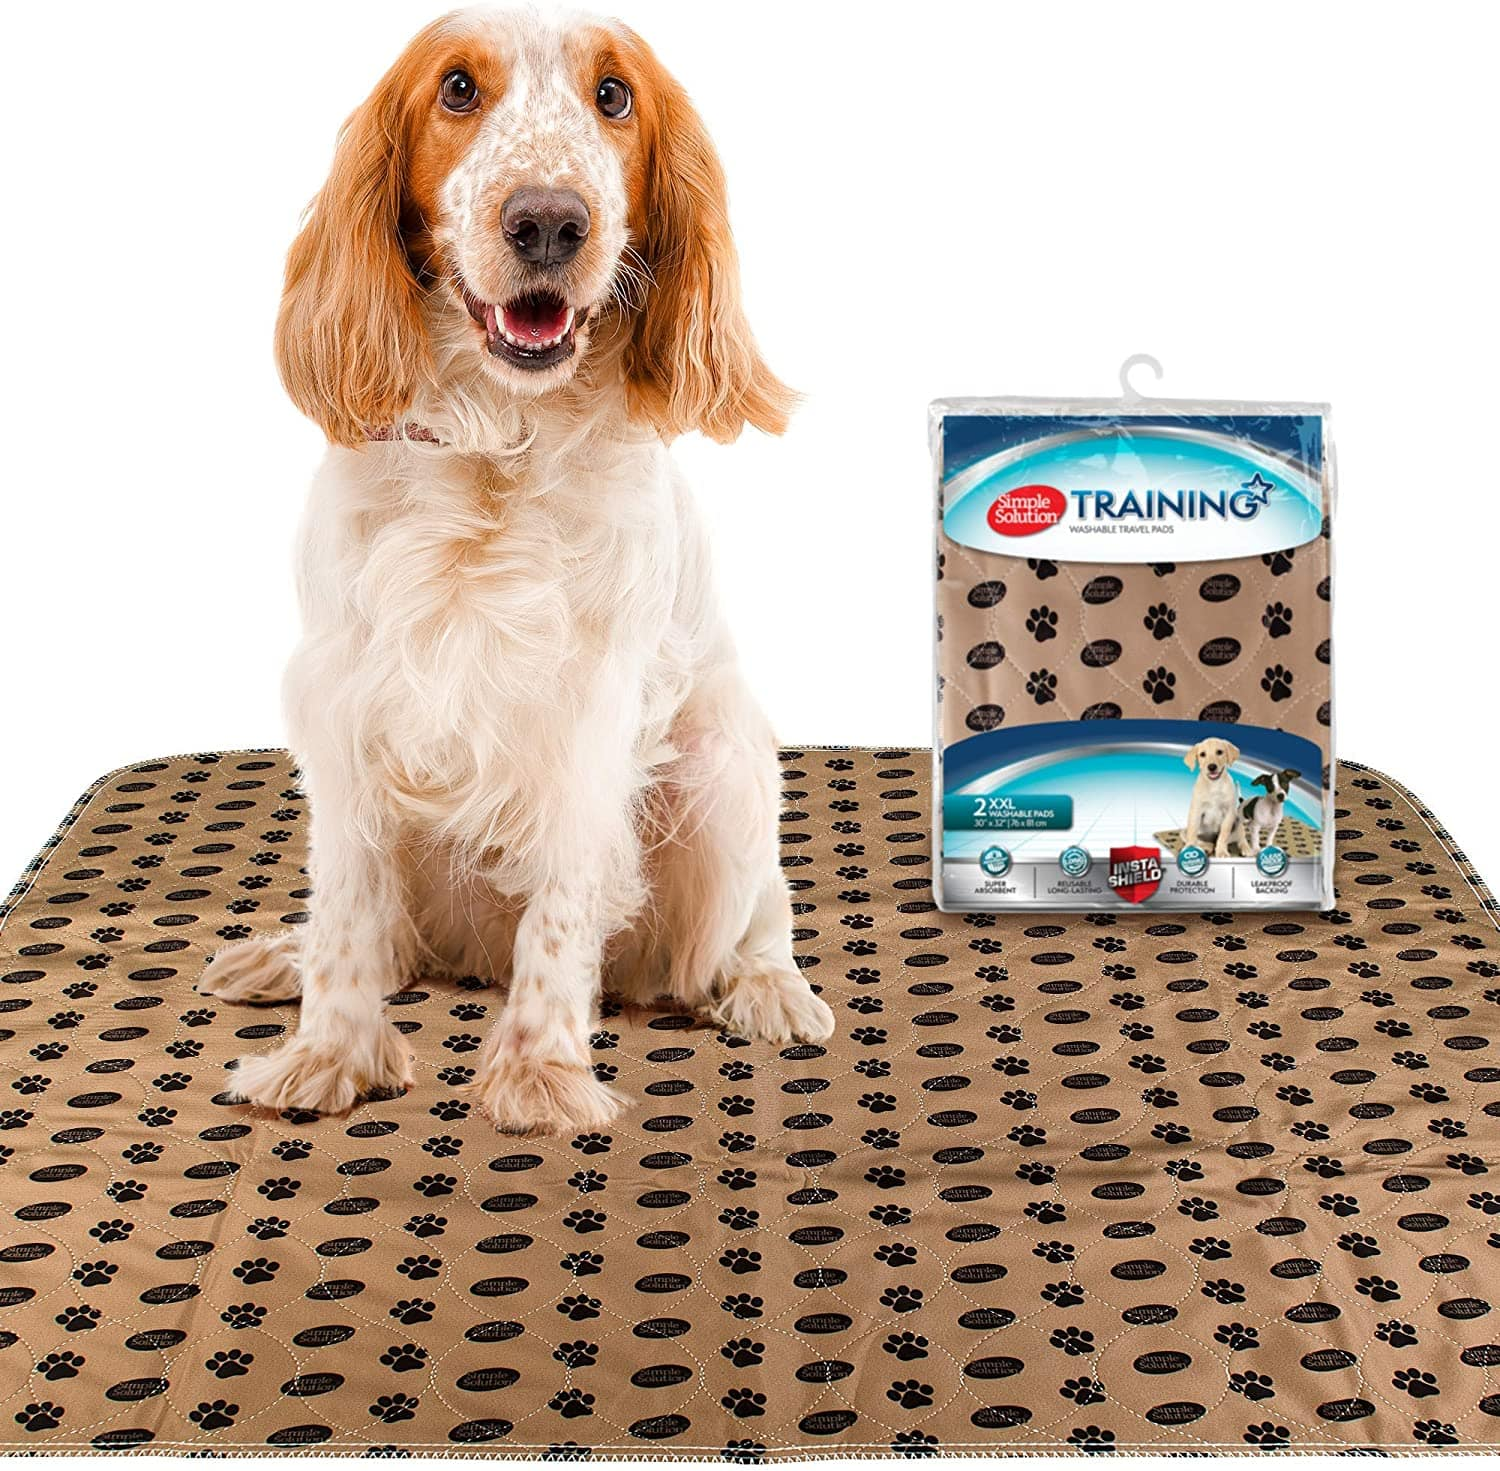 Large size reusable pee pads for older dogs